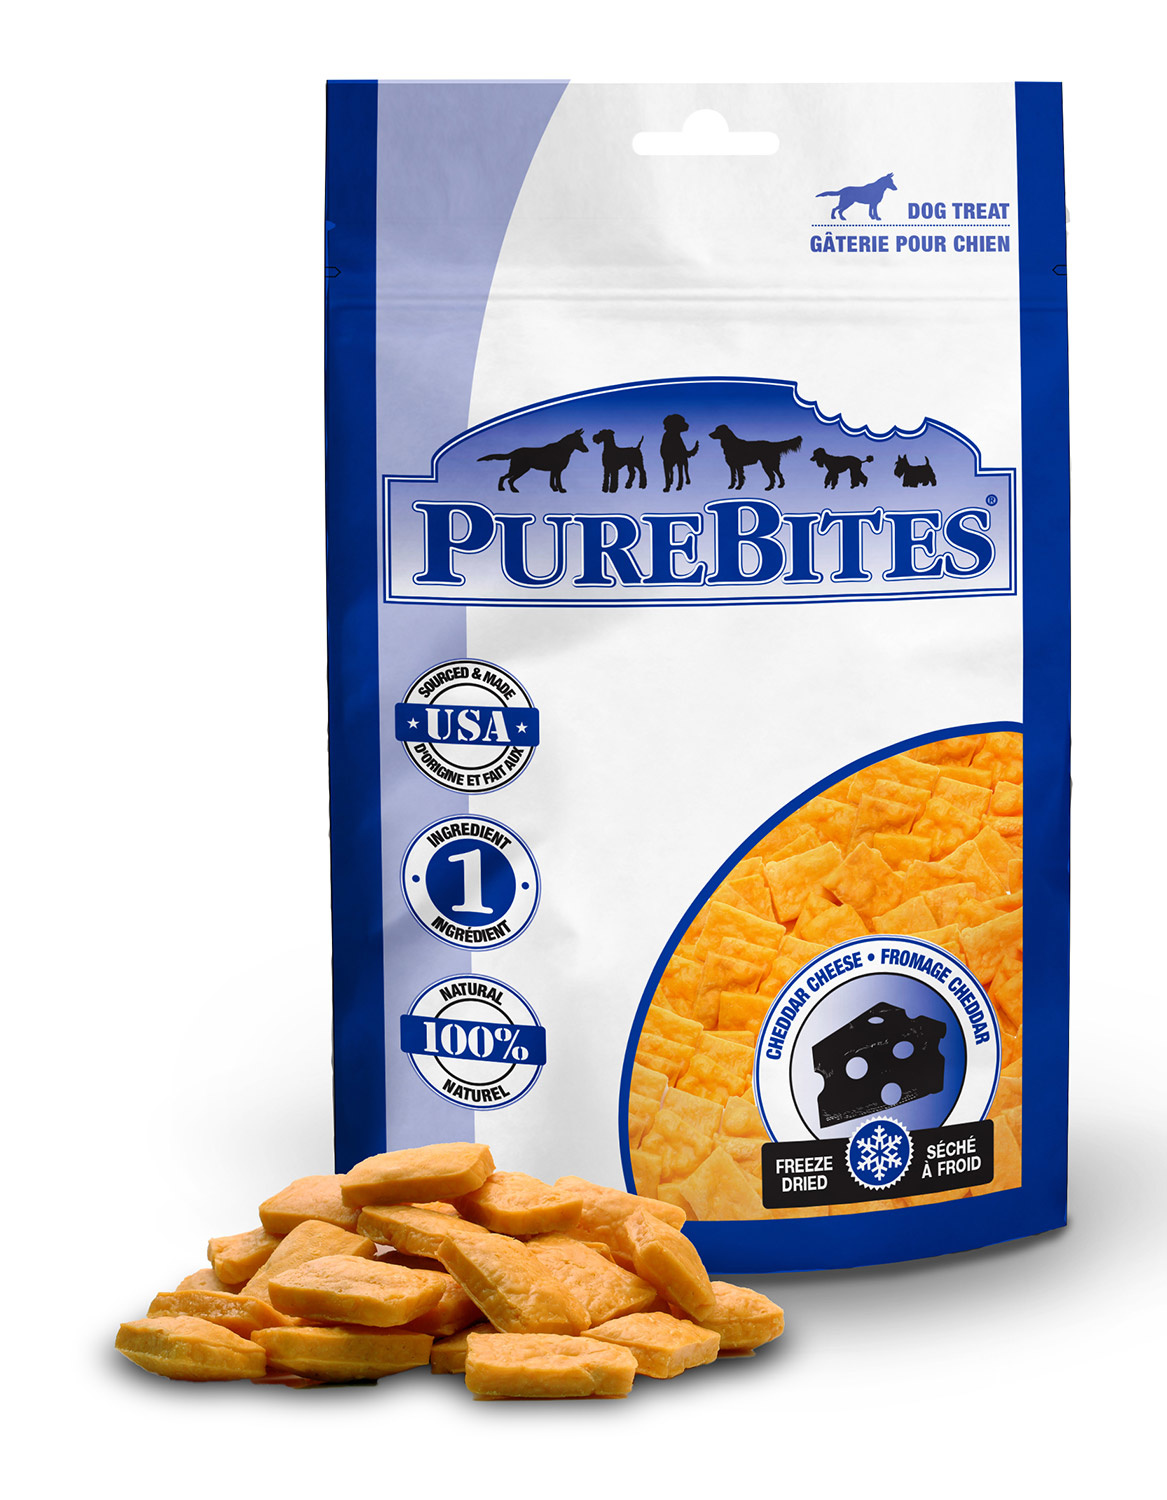 Pure Bites Pure Bites Cheddar Cheese